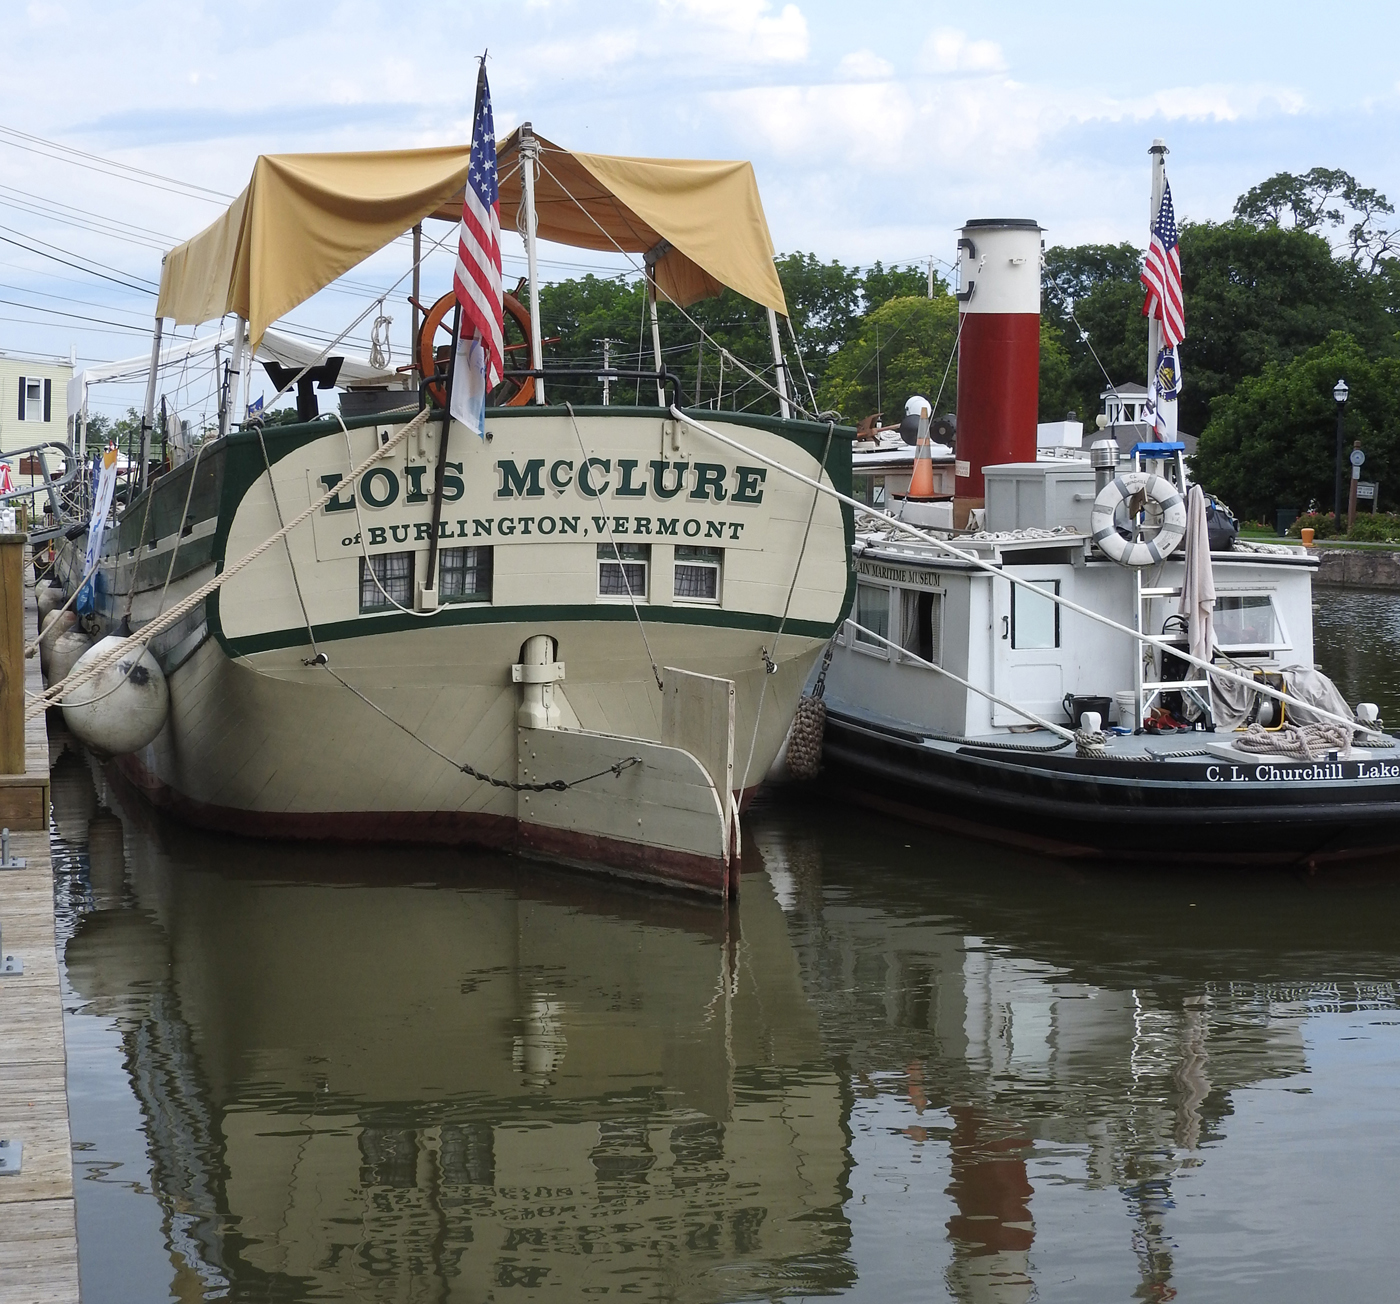 Lake Champlain Maritime Museum's replica 1862 canal schooner Lois McClure made a stop at the Spencerport Depot and Canal Museum on Monday, August 7 on her 2017 Legacy Tour commemorating the Erie Canal Bicentennial. As an authentic replica, Lois McClure has no means of propulsion other than sail, so the 1964 tugboat C.L. Churchill provides power. While in port the schooner crew shared a maritime perspective on the relationship between waterways and trees, canal boats and forests, and how they contributed to the transformation of the United States.